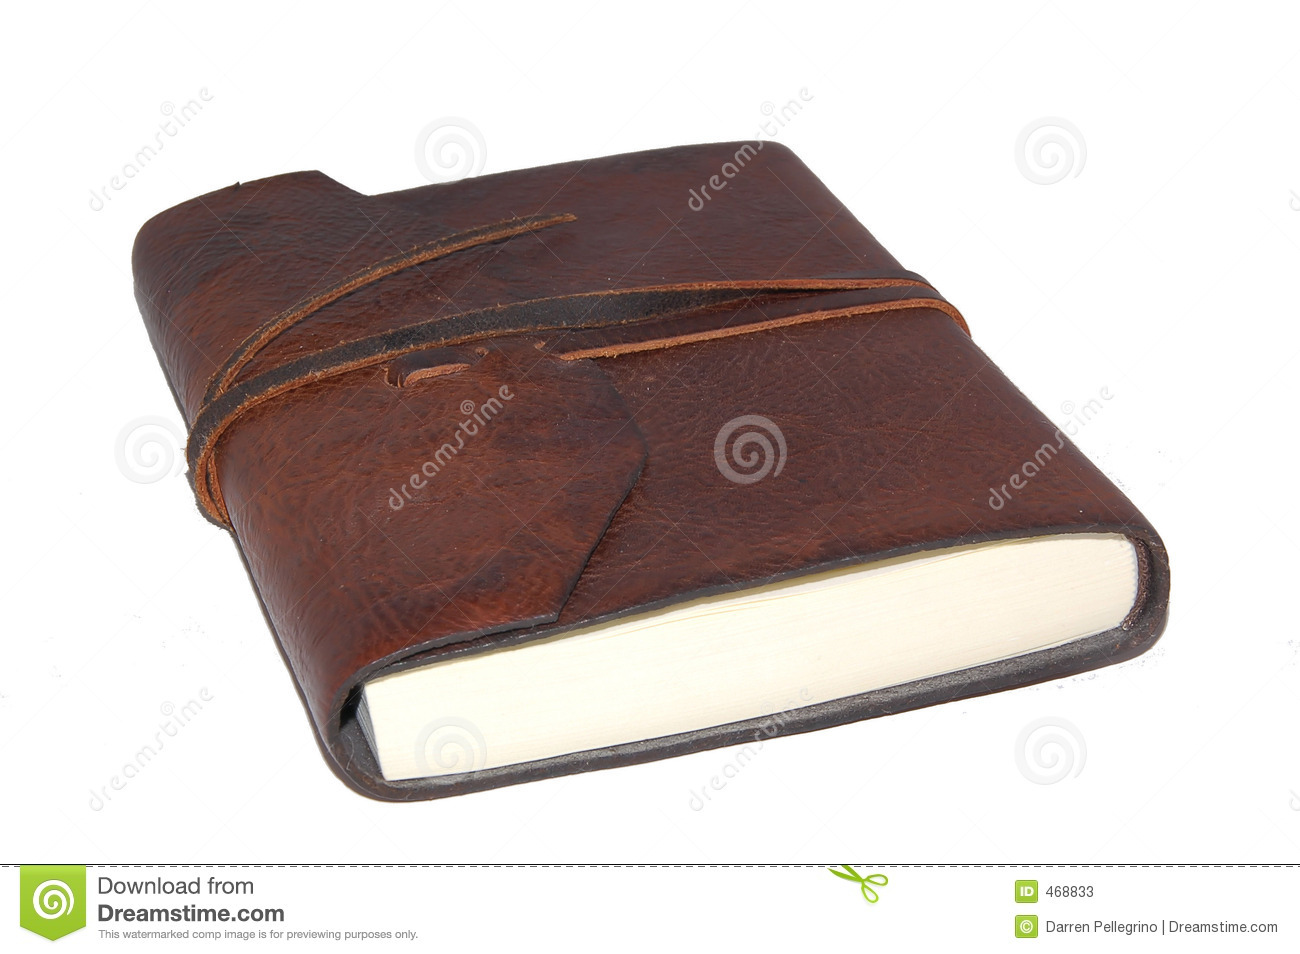 Download Leather Notebook stock image. Image of journal, leather - 468833